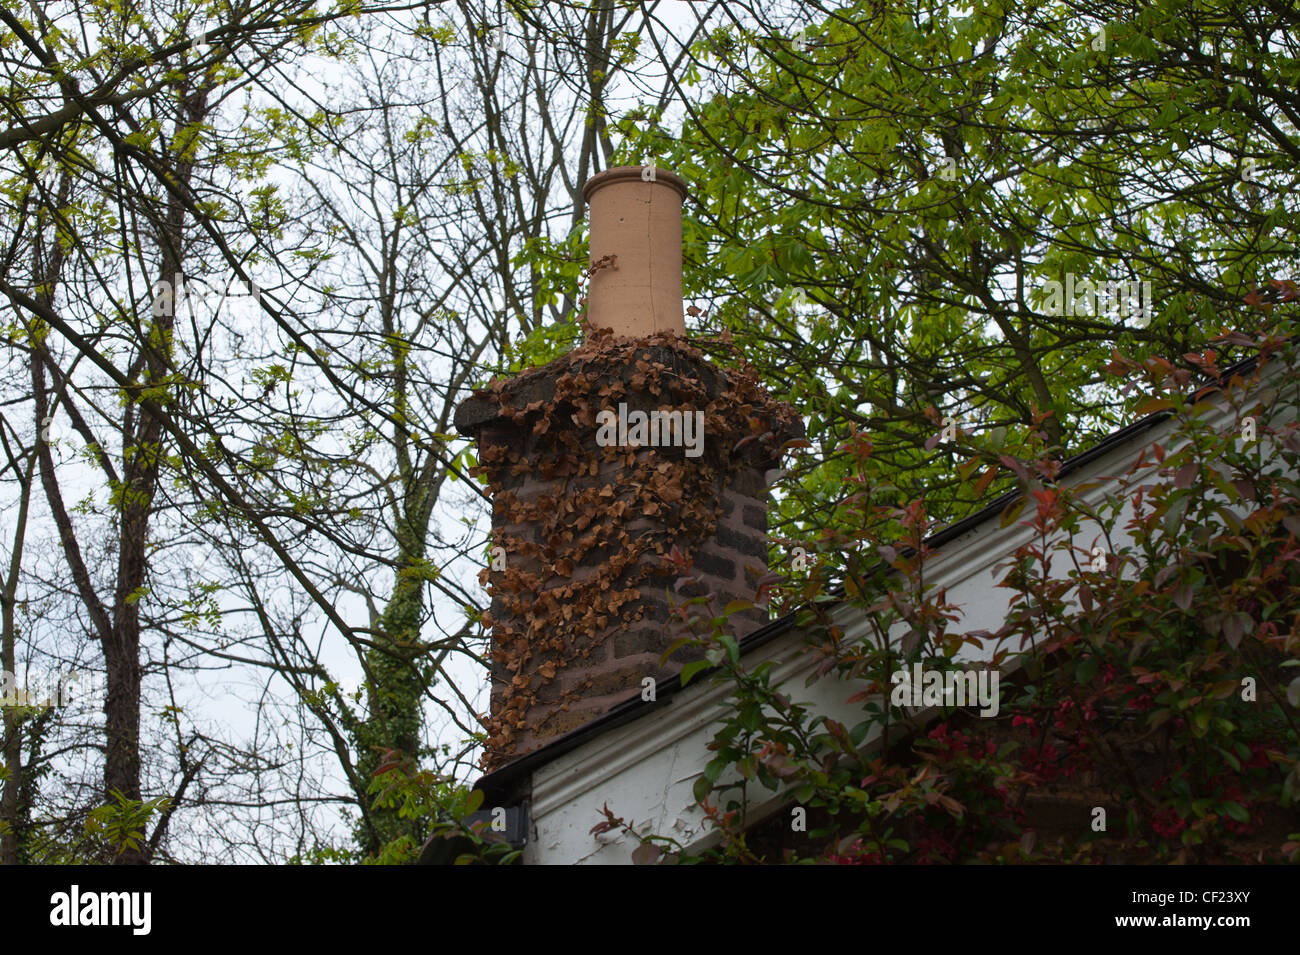 Chimney Pot with dead plant - Stock Image